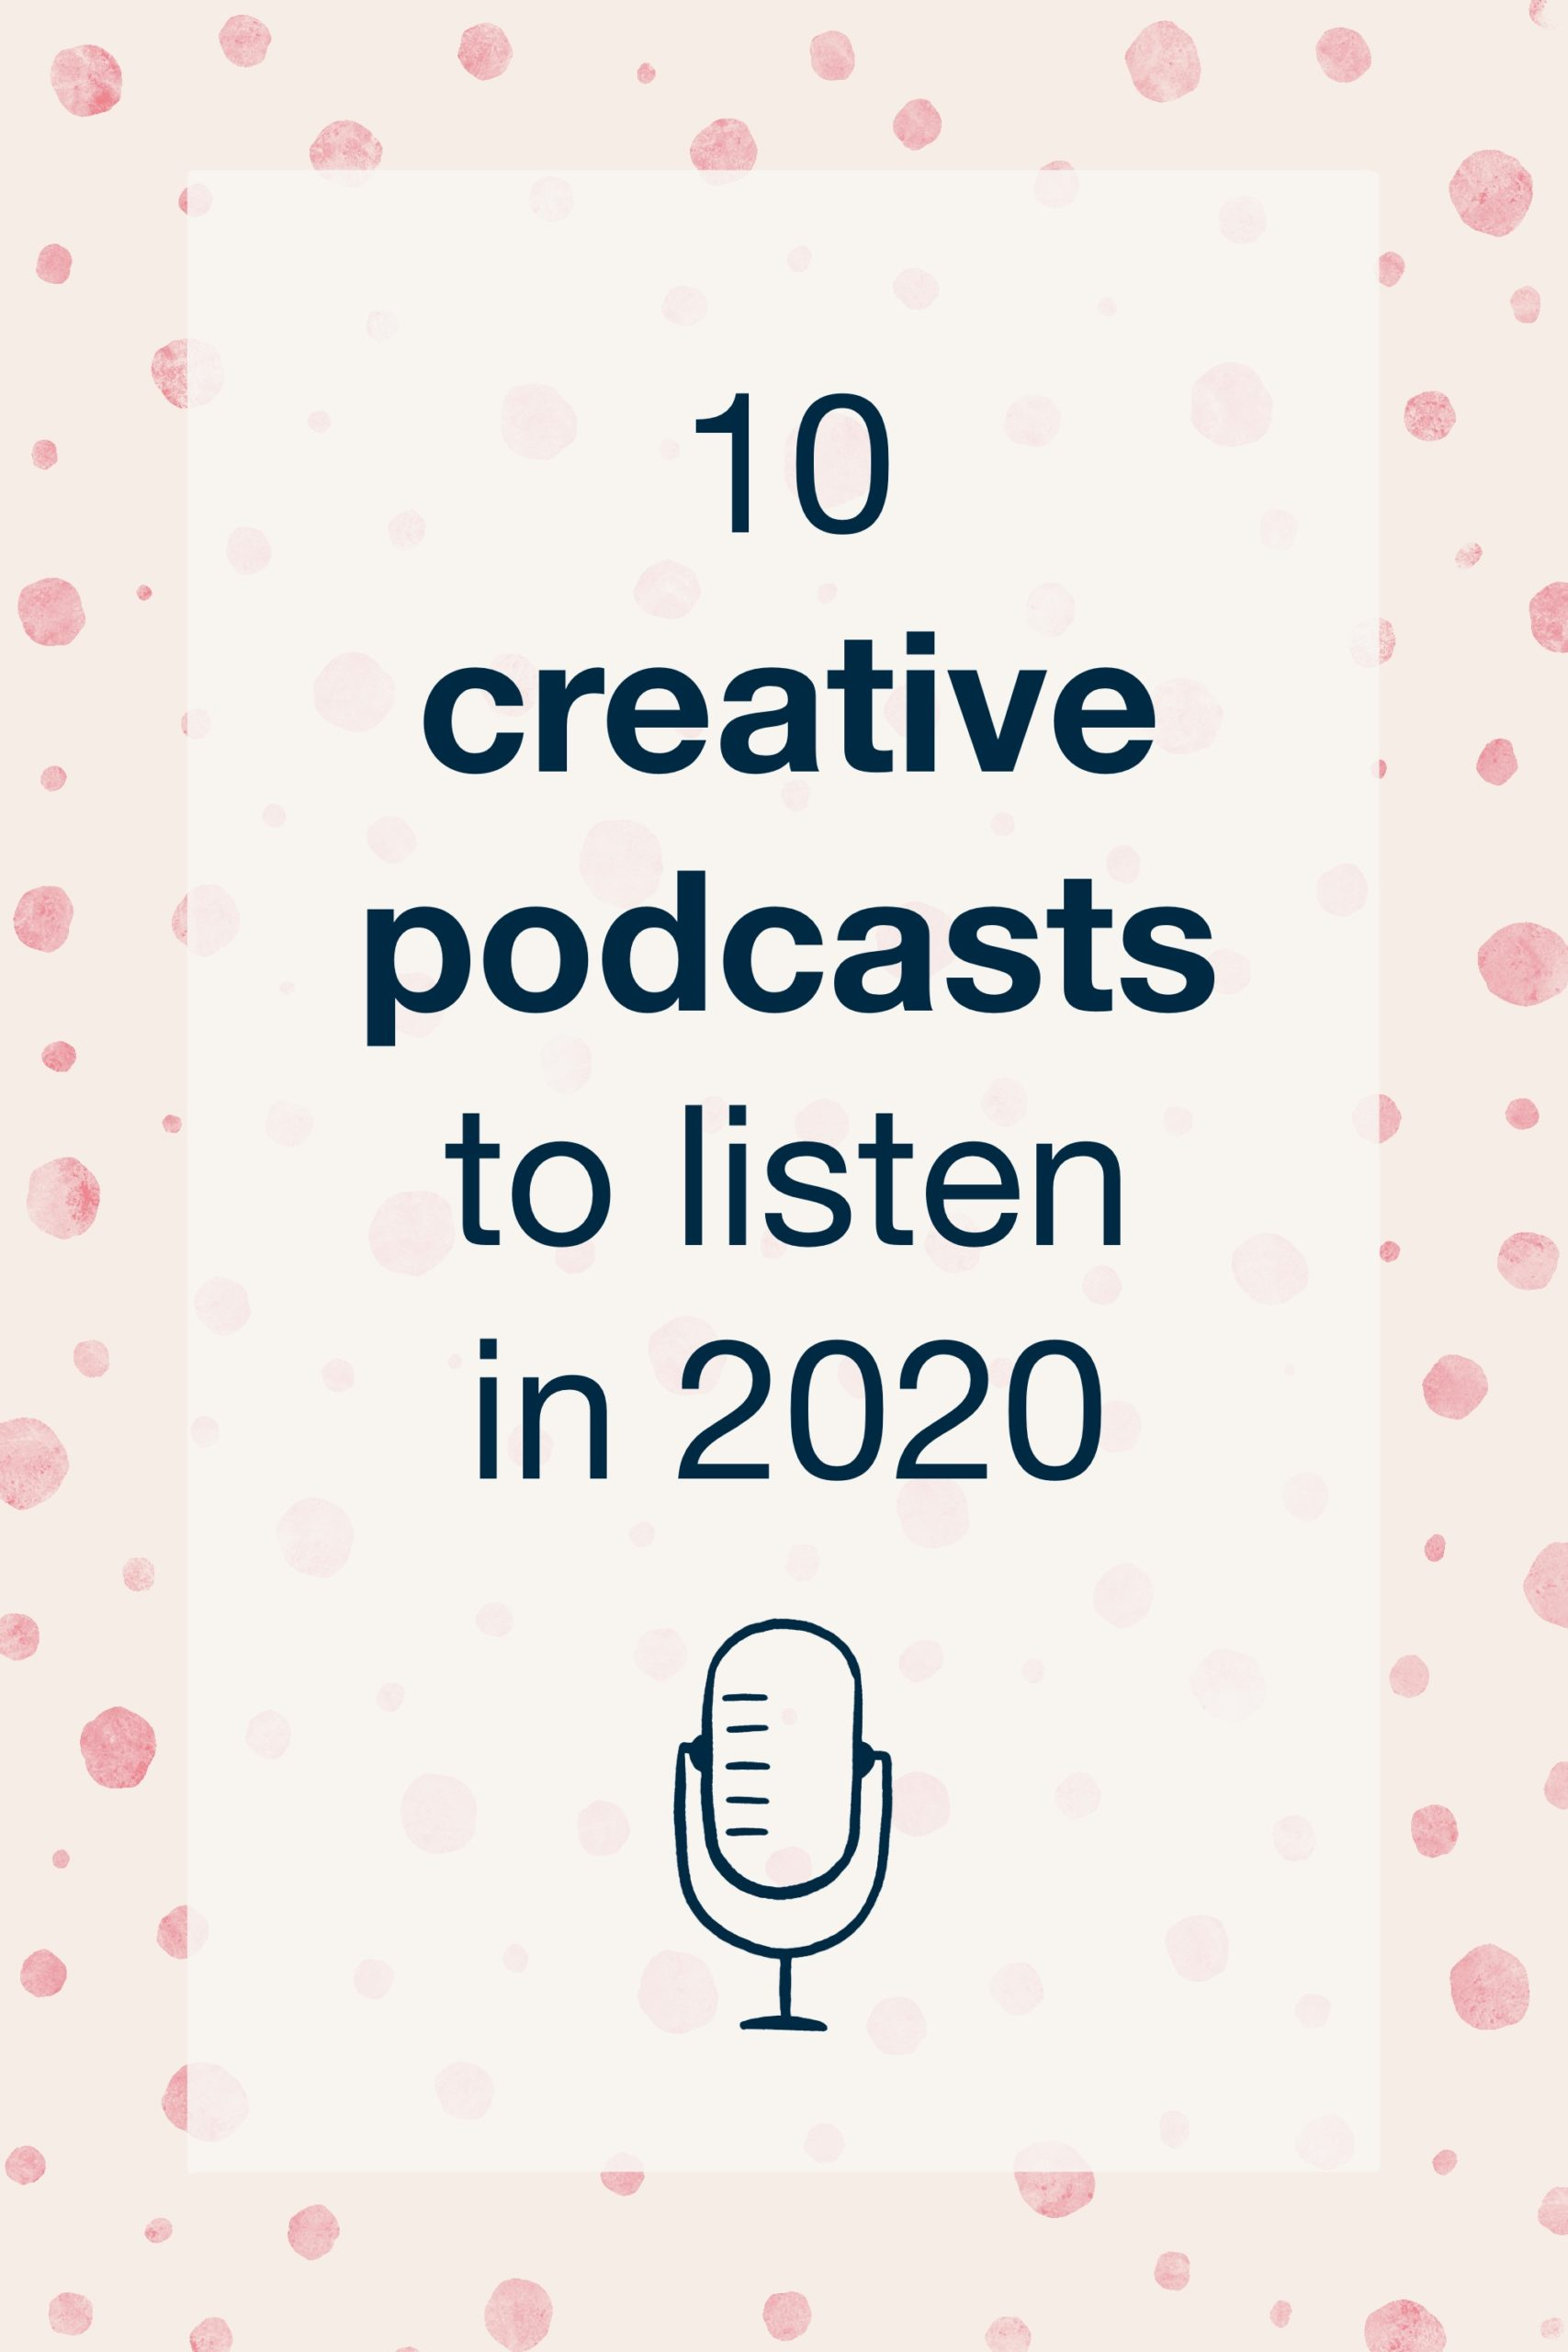 10 creative podcasts to listen in 2020